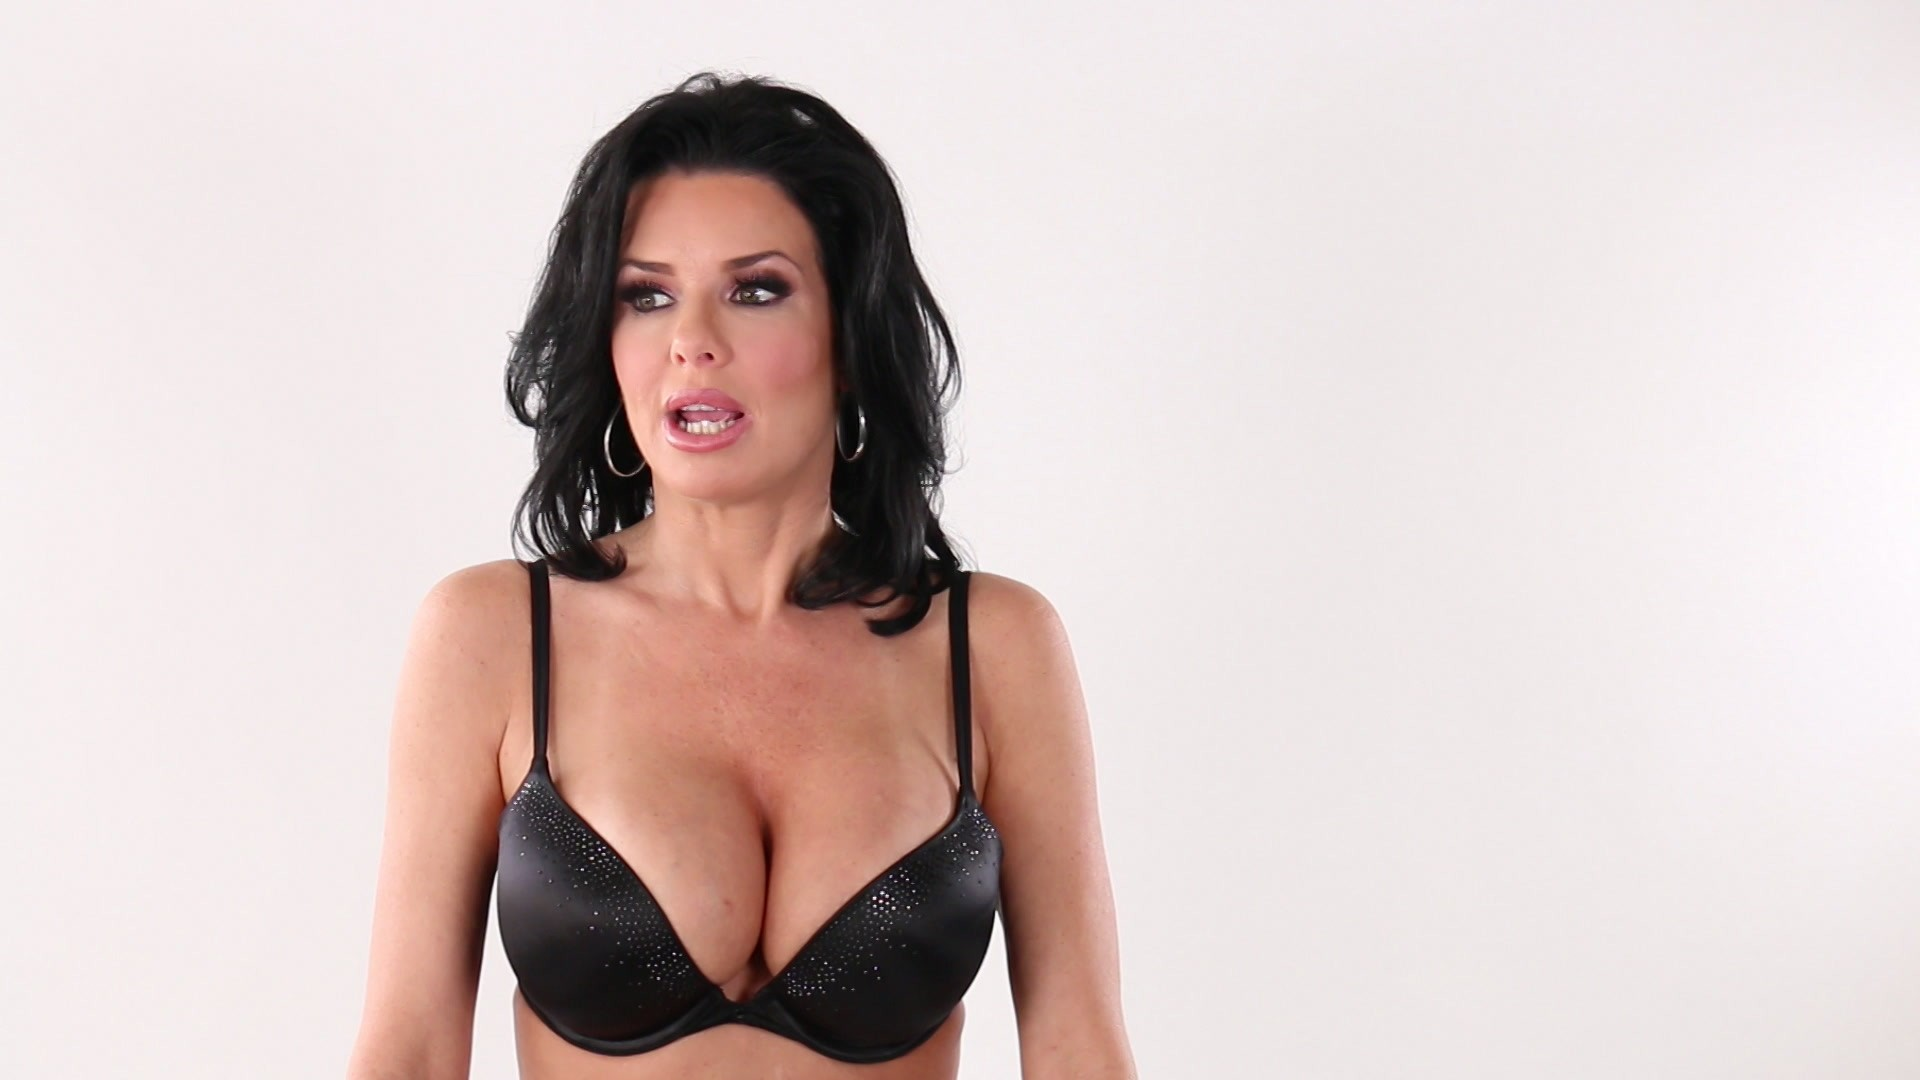 Sexy Milf Veronica Avluv Is Ready For Action Streaming At